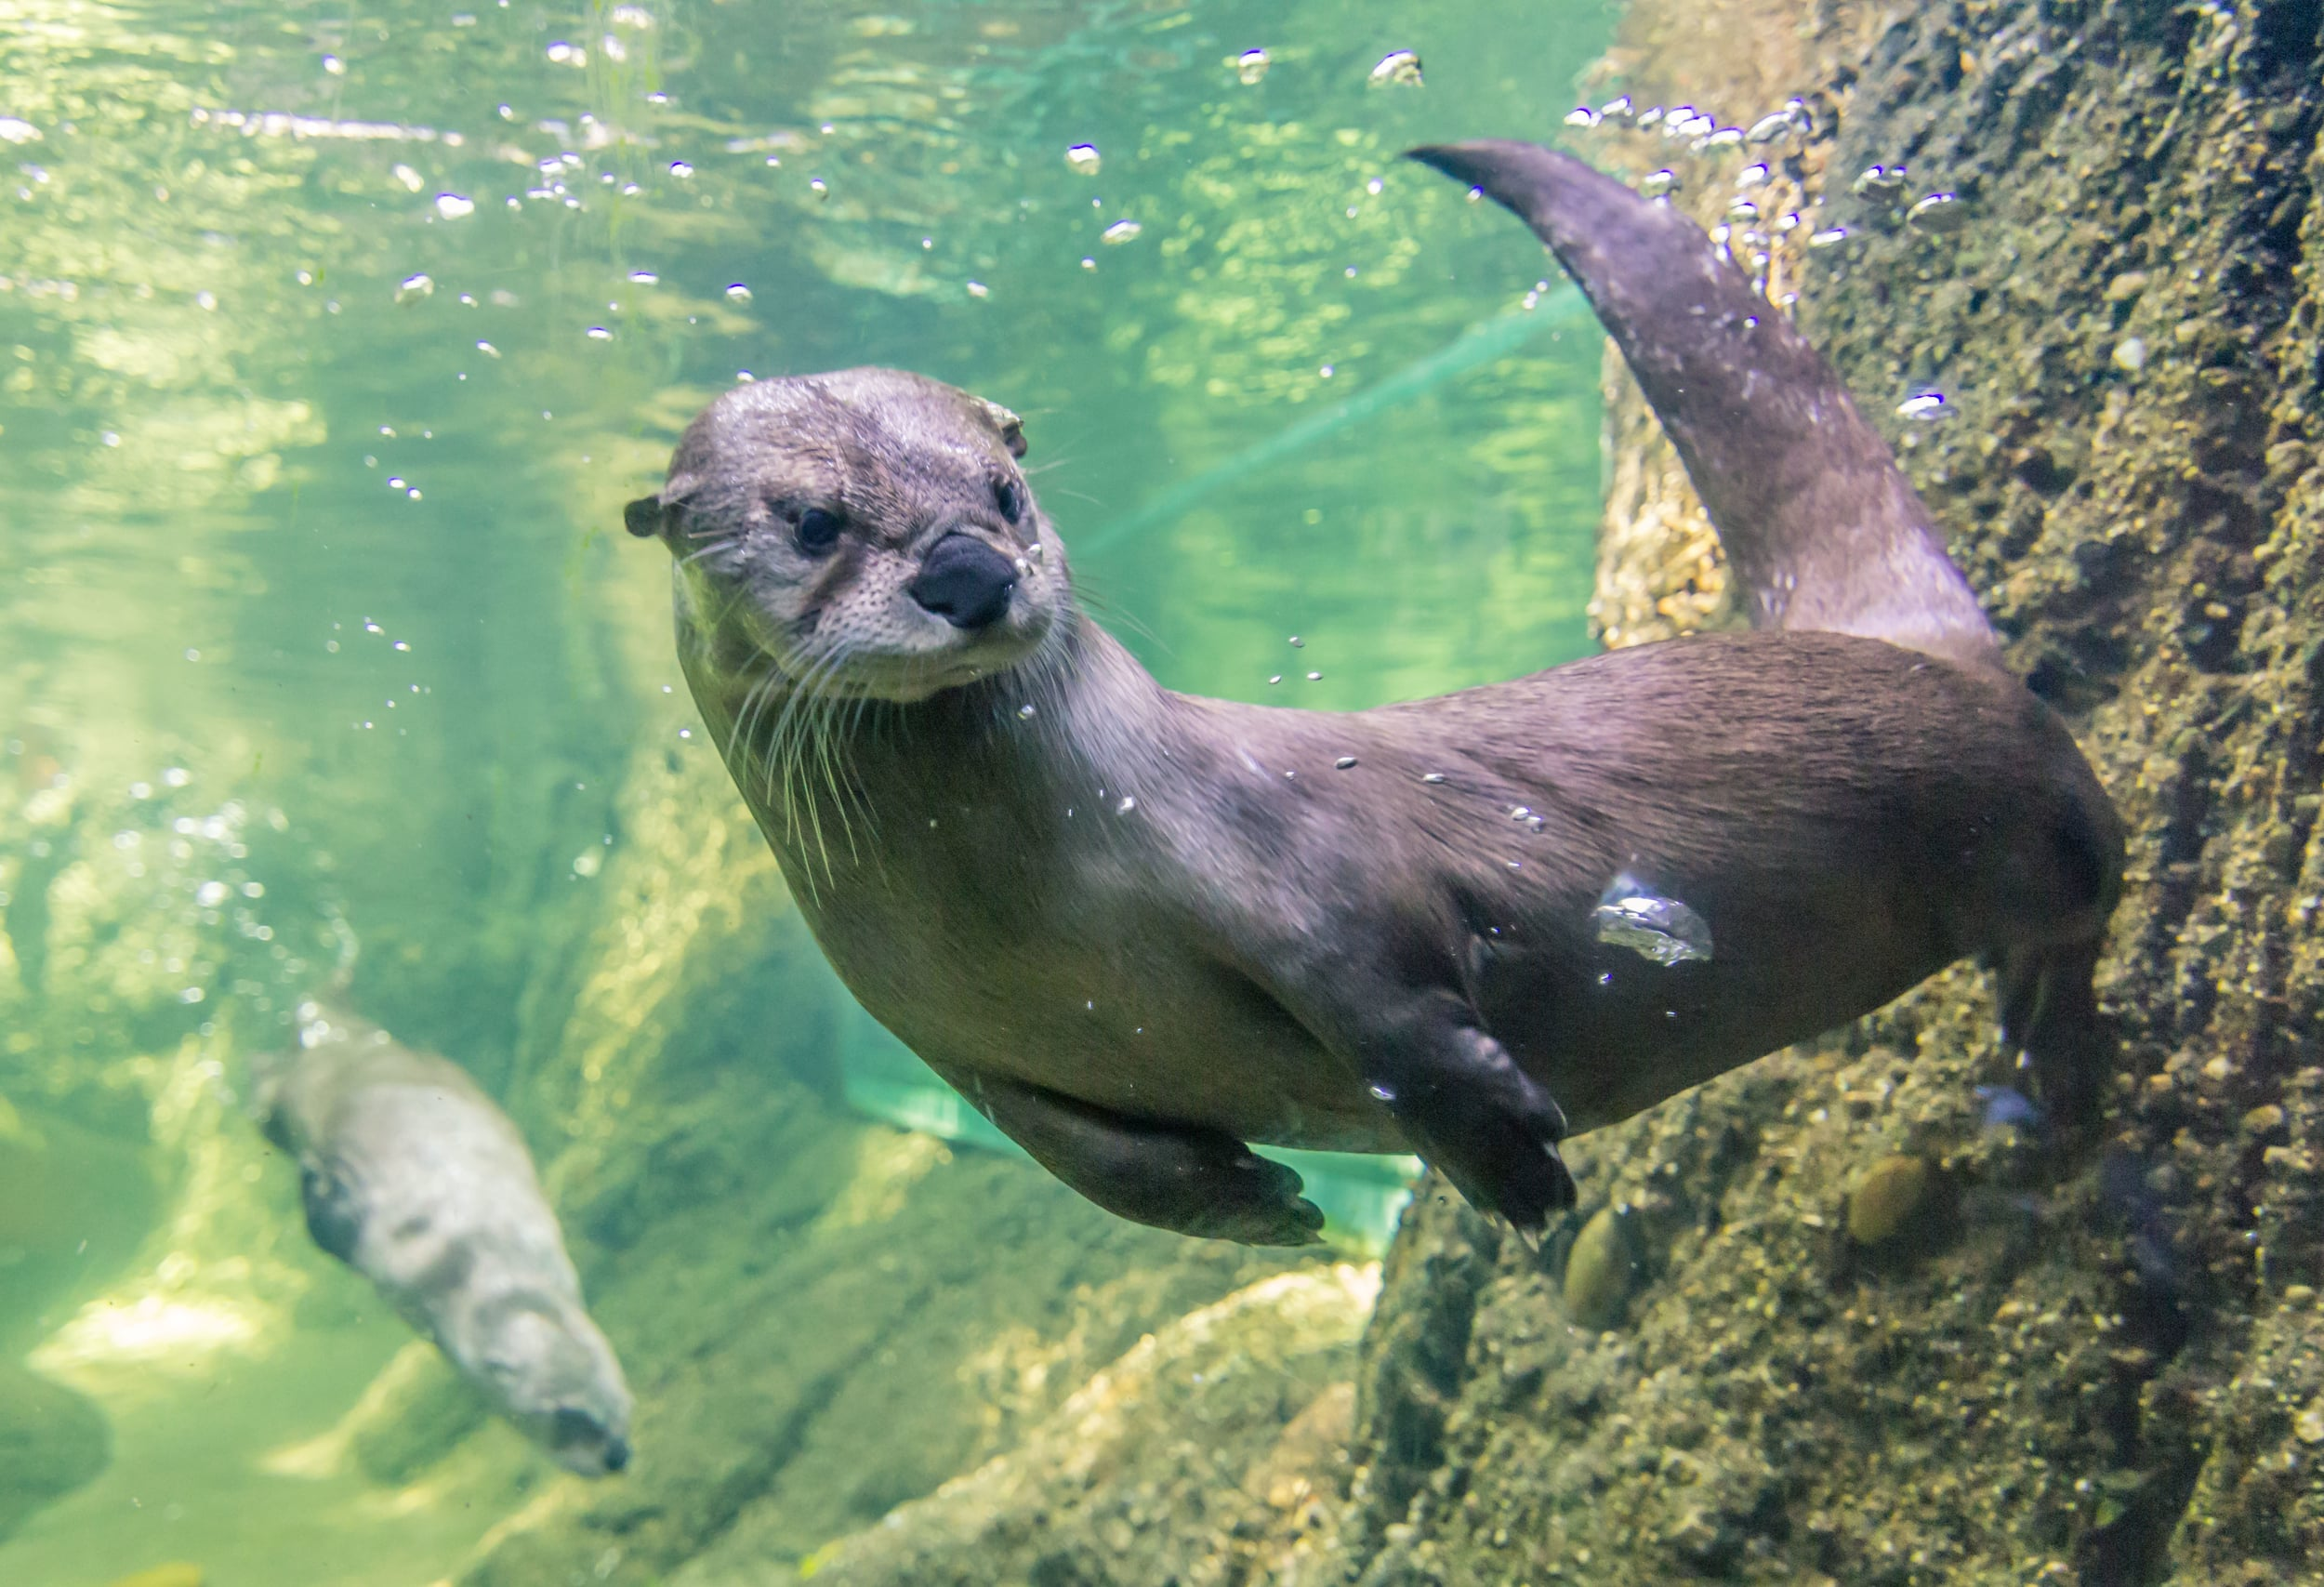 Otters Swimming - Sanders Fabares.jpg